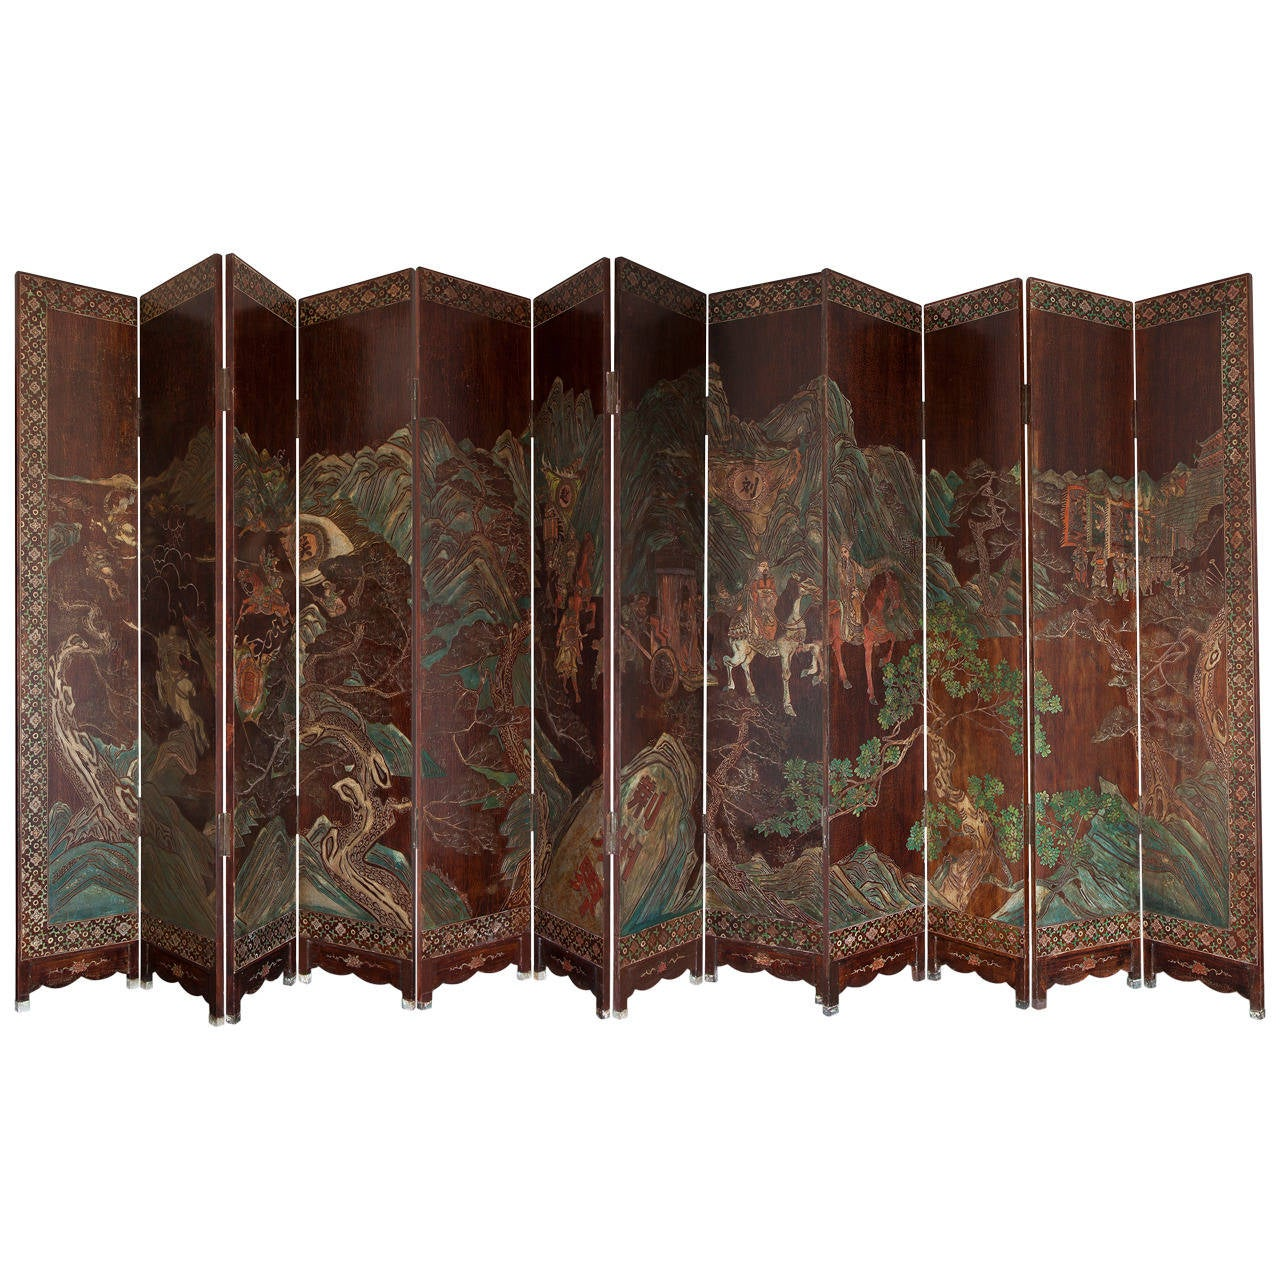 Huge and Unique 12-Panel Chinese Coromandel Double-Sided Screen